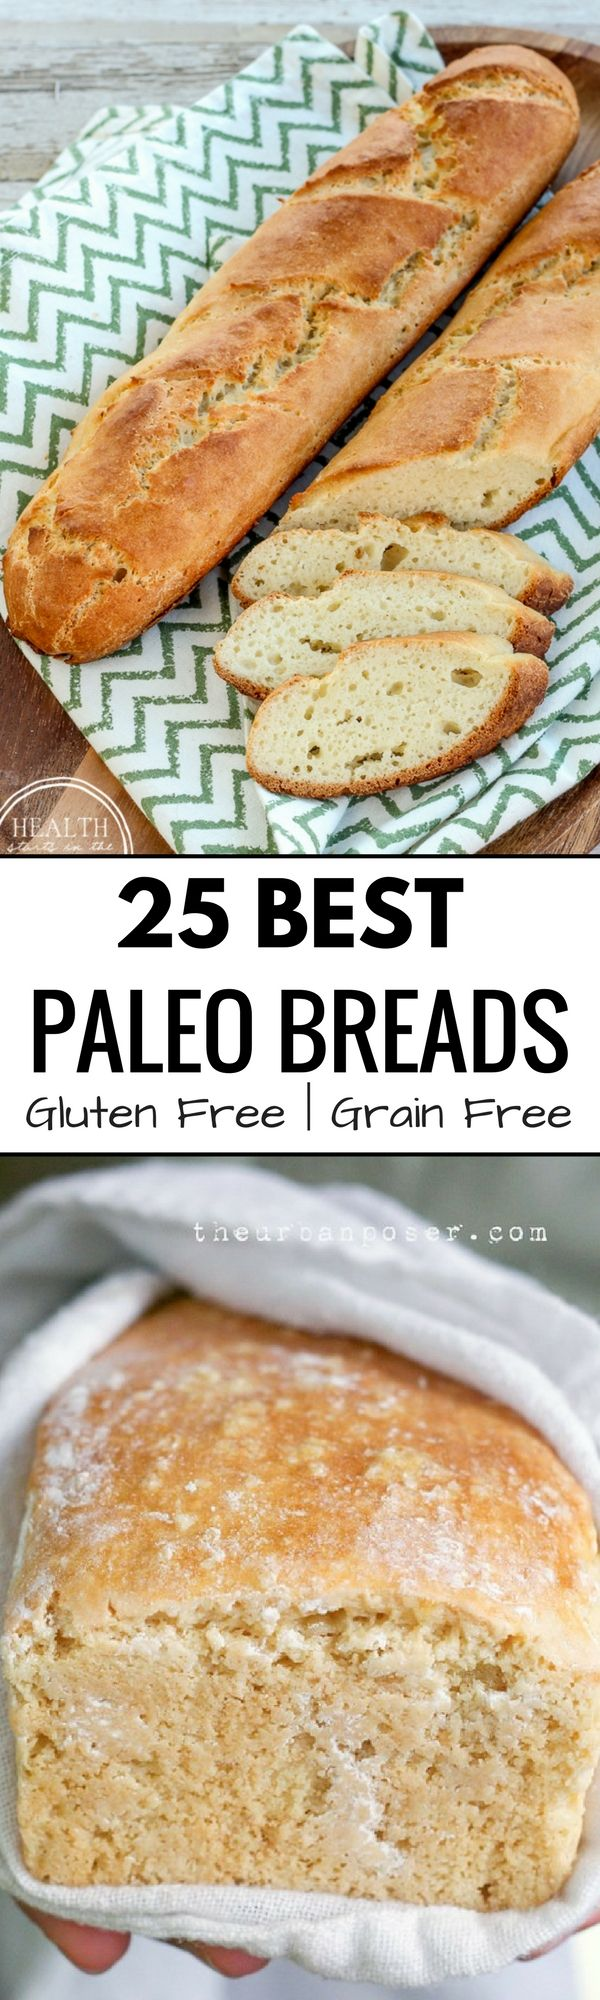 Best Paleo Breads! A round up of 25 of the best Grain Free, Gluten Free, and paleo breads. From rustic bread loaves, sandwich bread, to 5 minute banana bread recipes, as well as paleo sourdough.